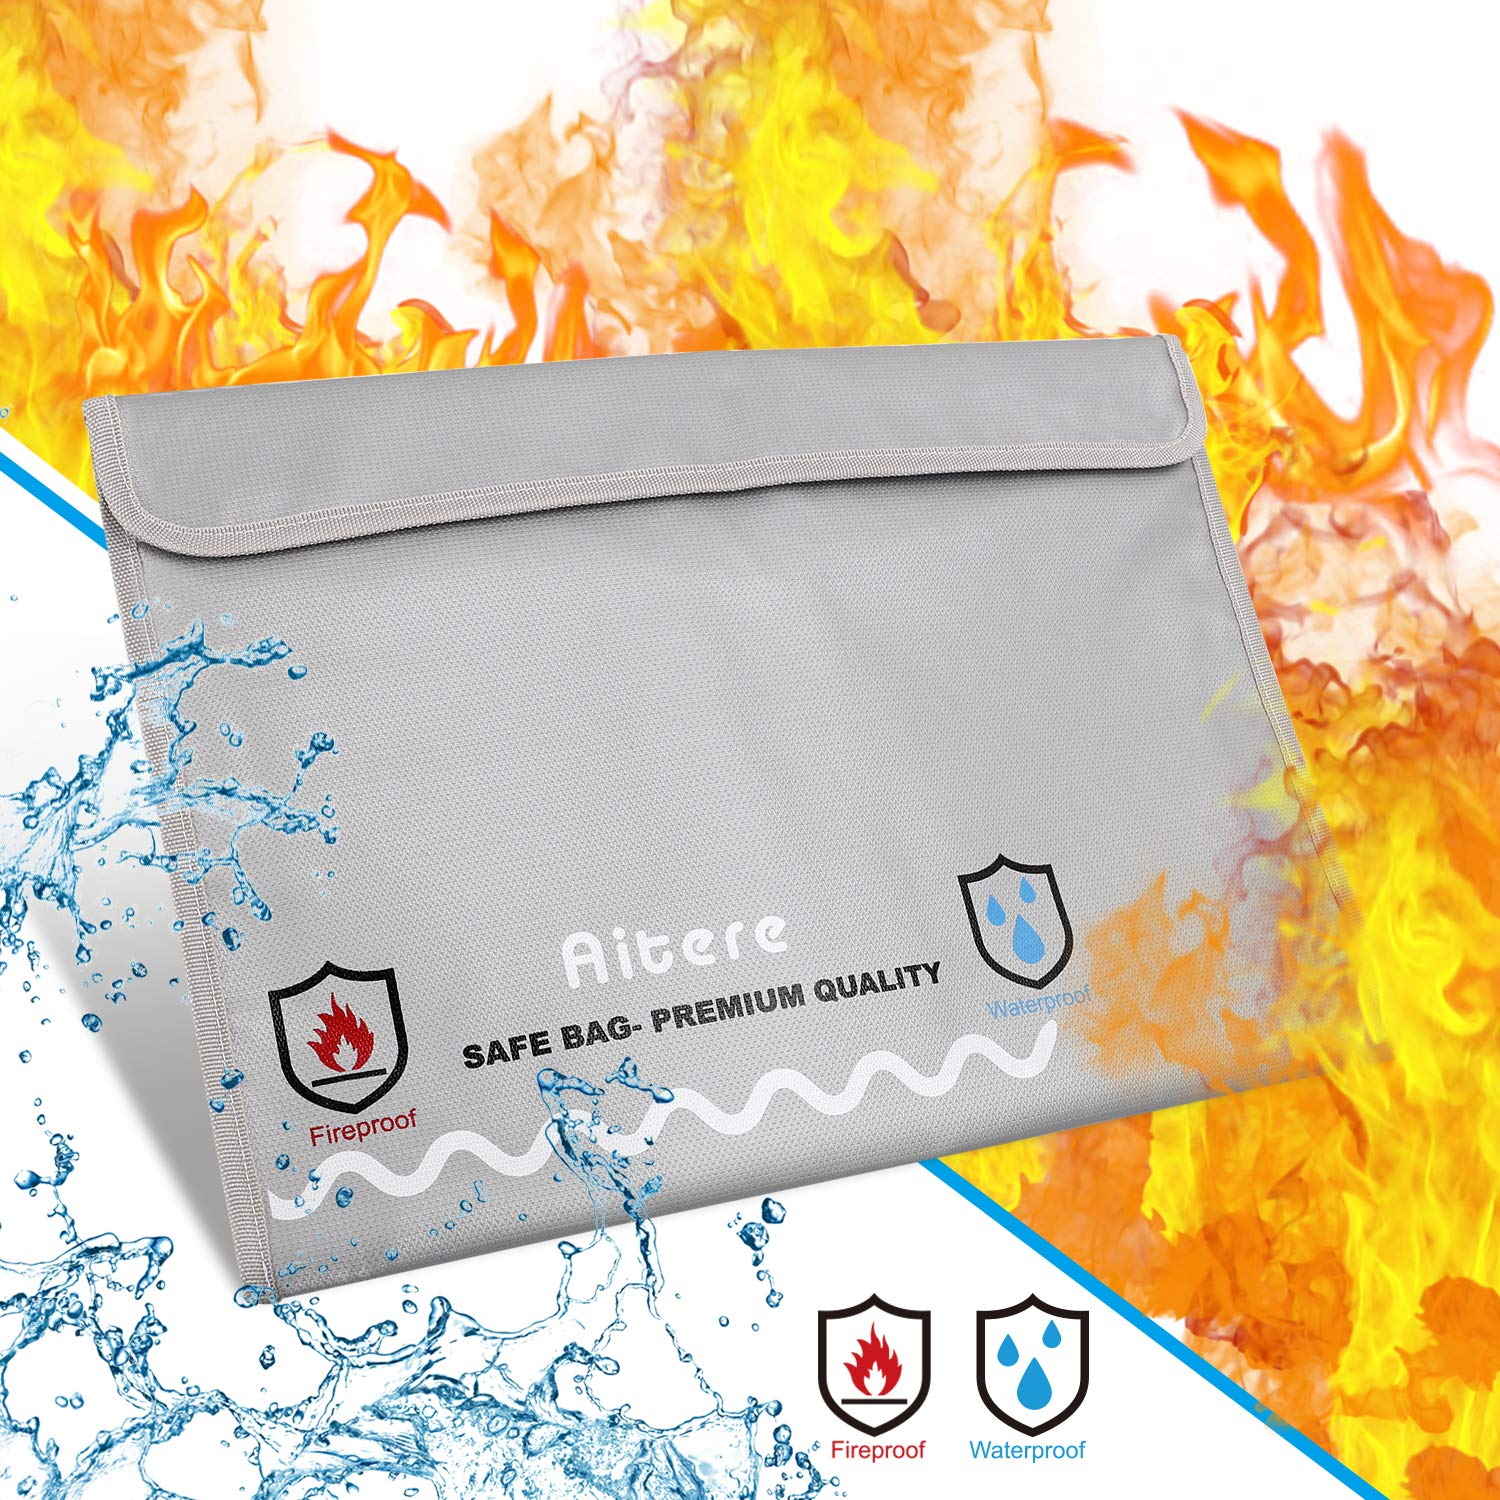 Aitere Fireproof Safe Document Bag- New Version Fireproof Envelope for Documents Non-Itchy Liquid Silicone Coated Fire & Water Resistant Money Bag Fireproof Safe Storage for Money, Documents, Jewelry